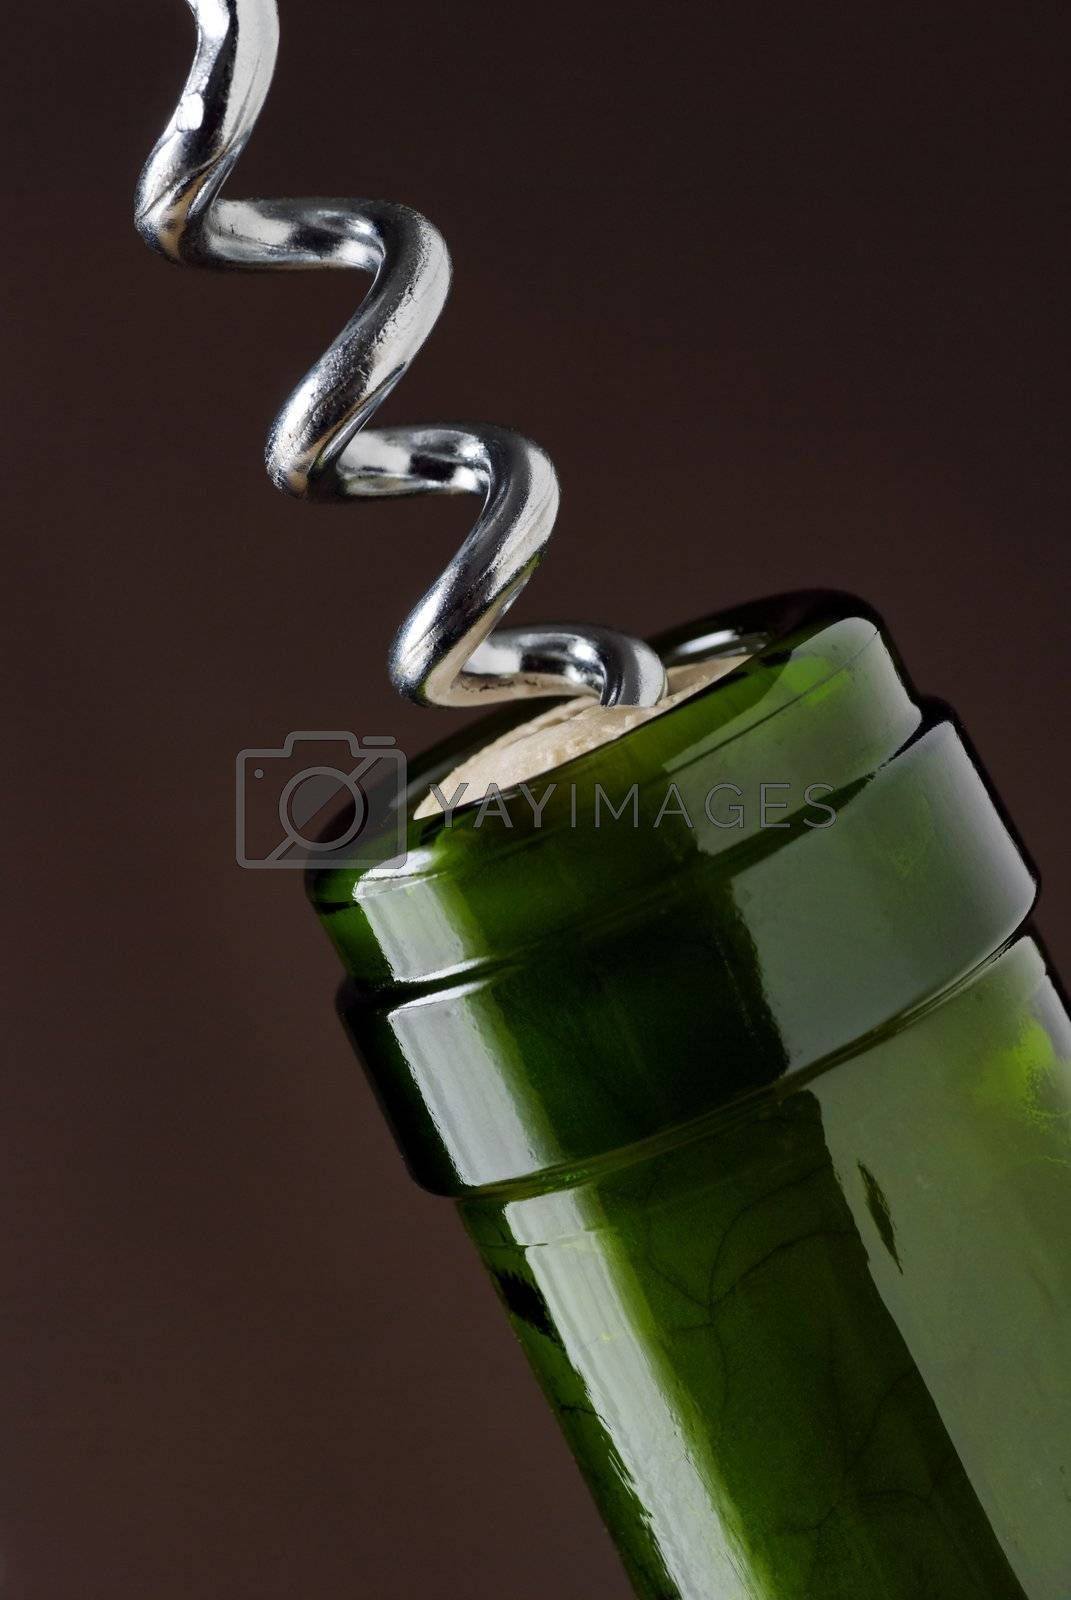 macro close up of corkscrew in wine bottle cork